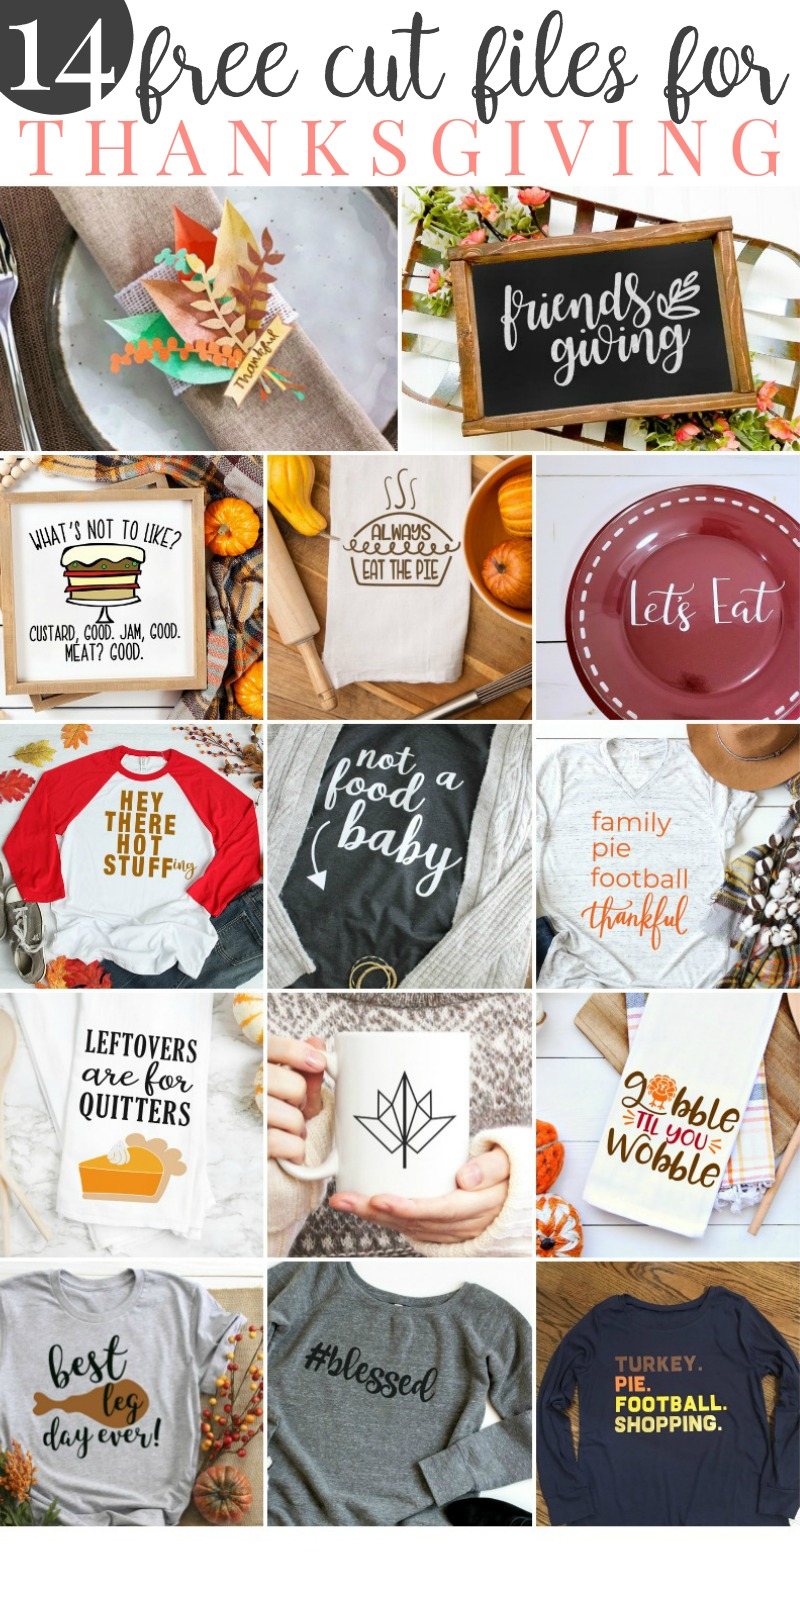 Free SVG files for Thanksgiving! Perfect for your Cricut or Silhouette machine and making all of the things for the holidays! #svg #thanksgiving #free